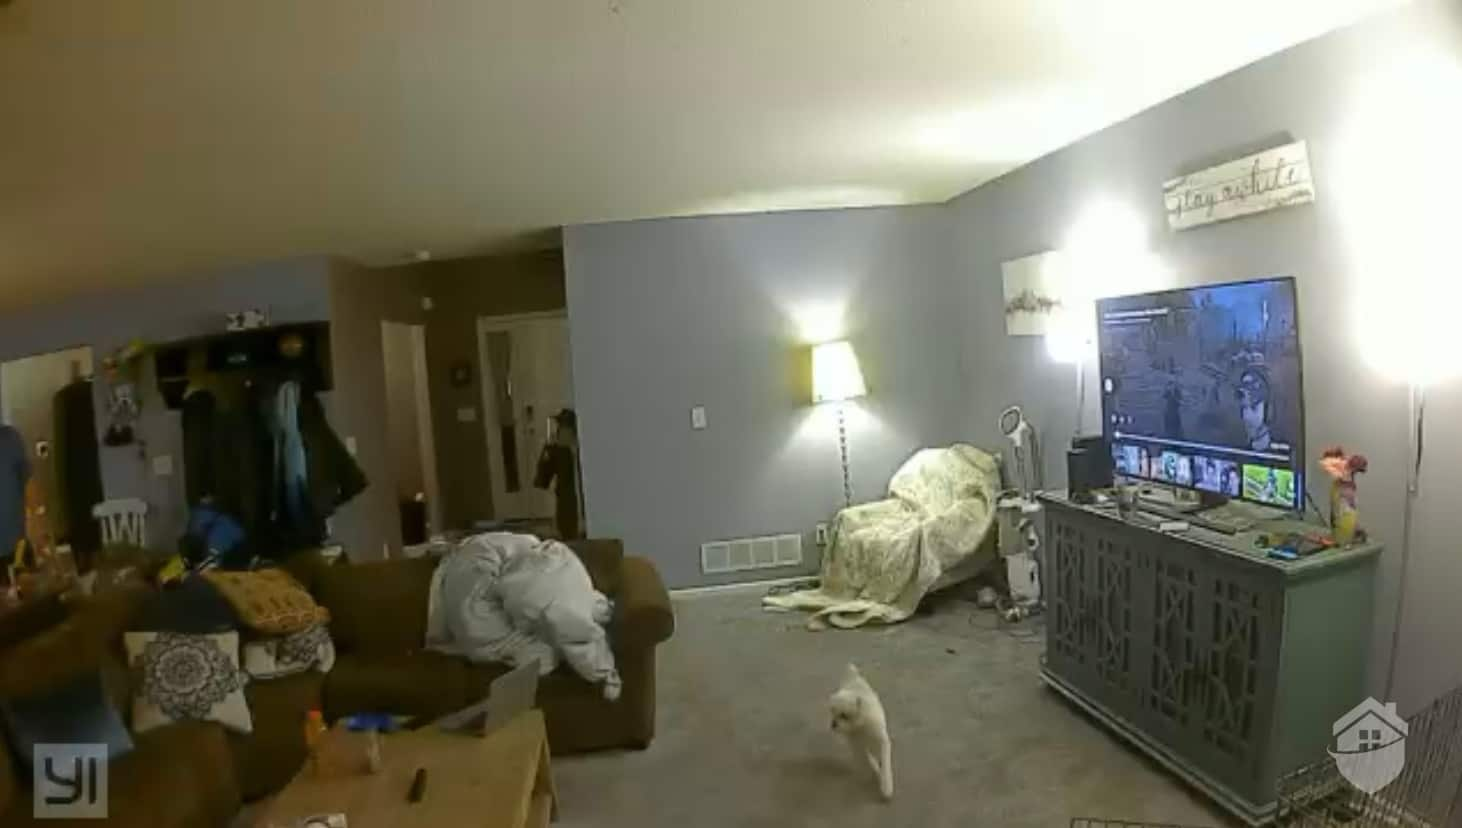 YI Indoor Camera Video Quality